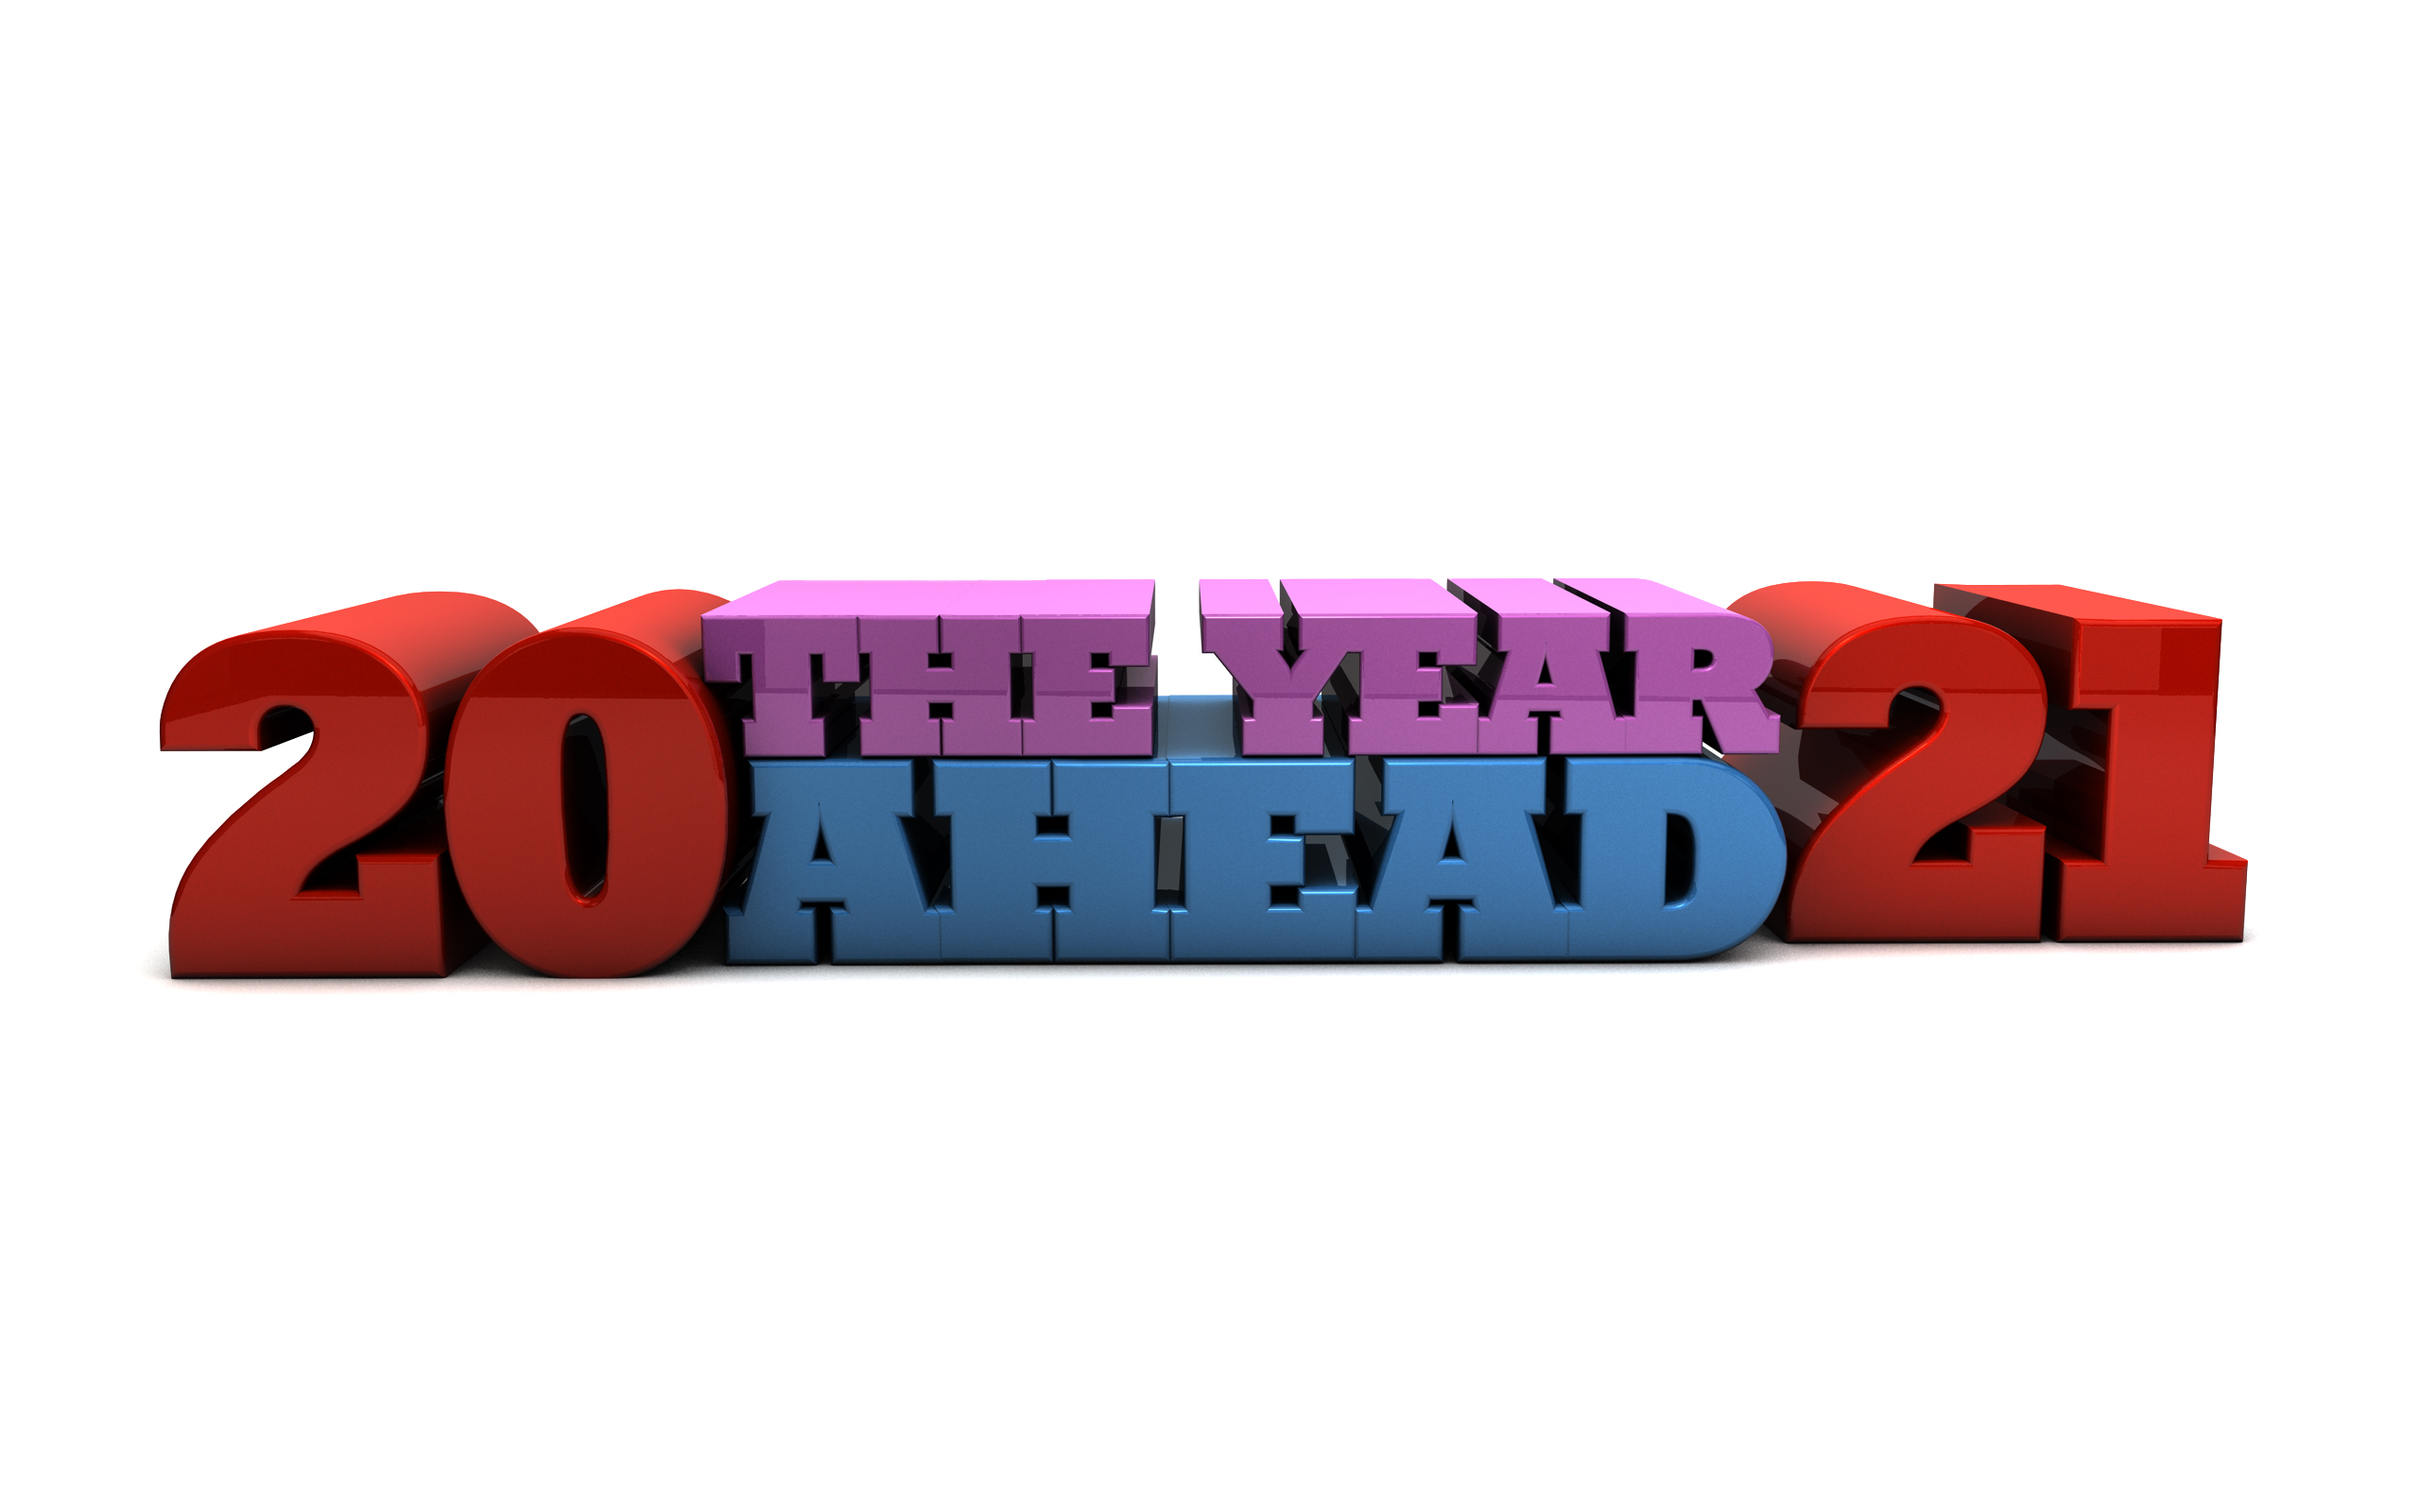 2021 The Year Ahead - Free marketing illustration